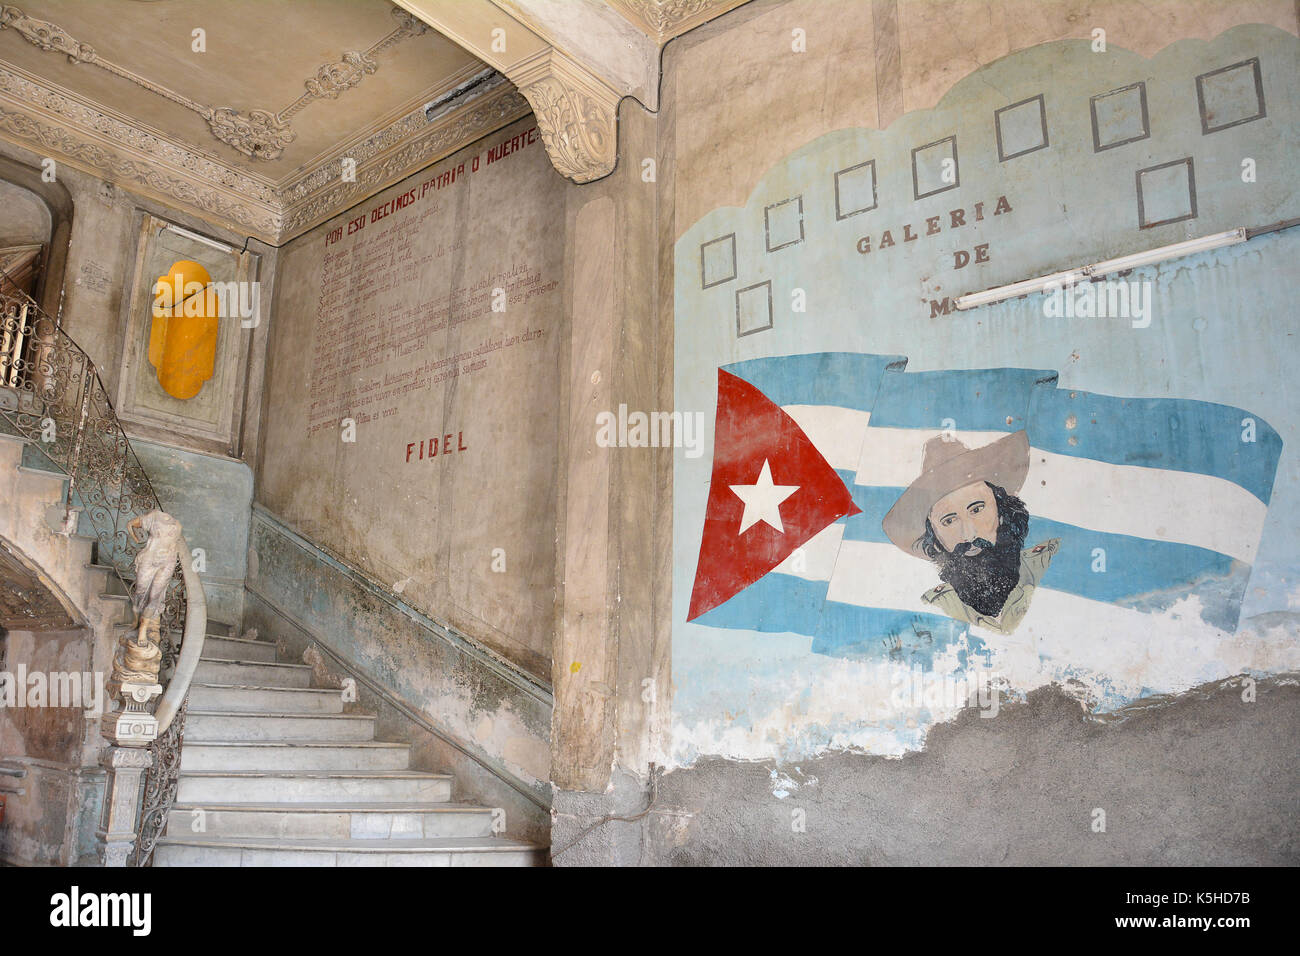 HAVANA, CUBA - JULY 23, 2016: Paladar La Guarida Restaurant staircase and mural. The restaurant is located on the third floor of the historic building - Stock Image